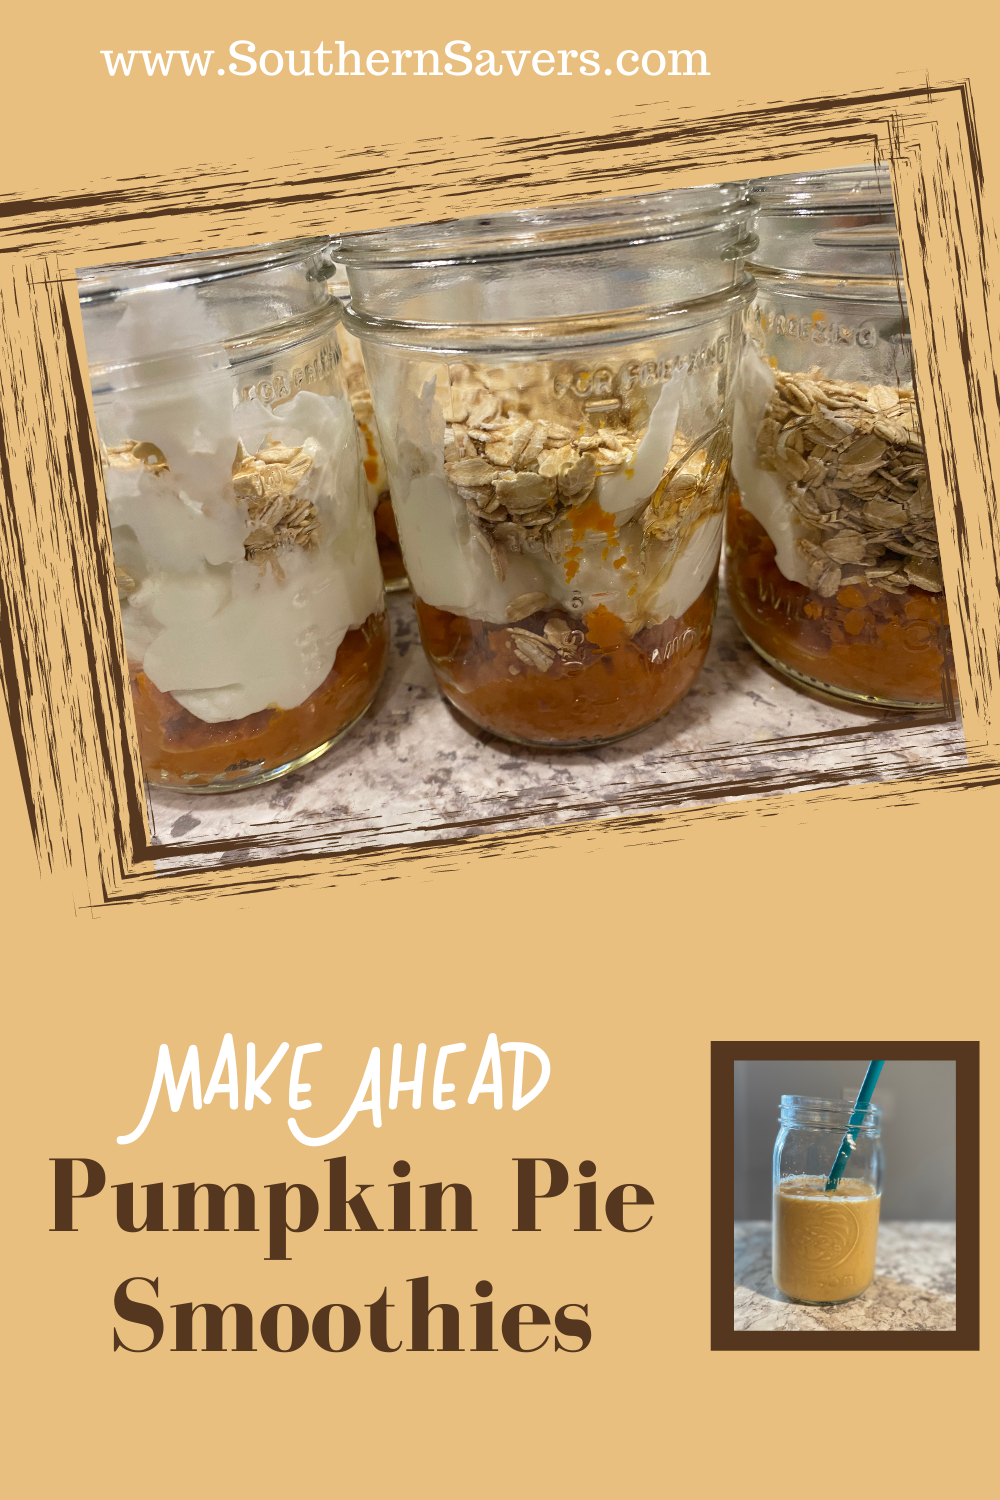 There's pumpkin everywhere, so I'm trying to put it in everything I can. These pumpkin pie smoothies are delicious, and you can prep them ahead of time!